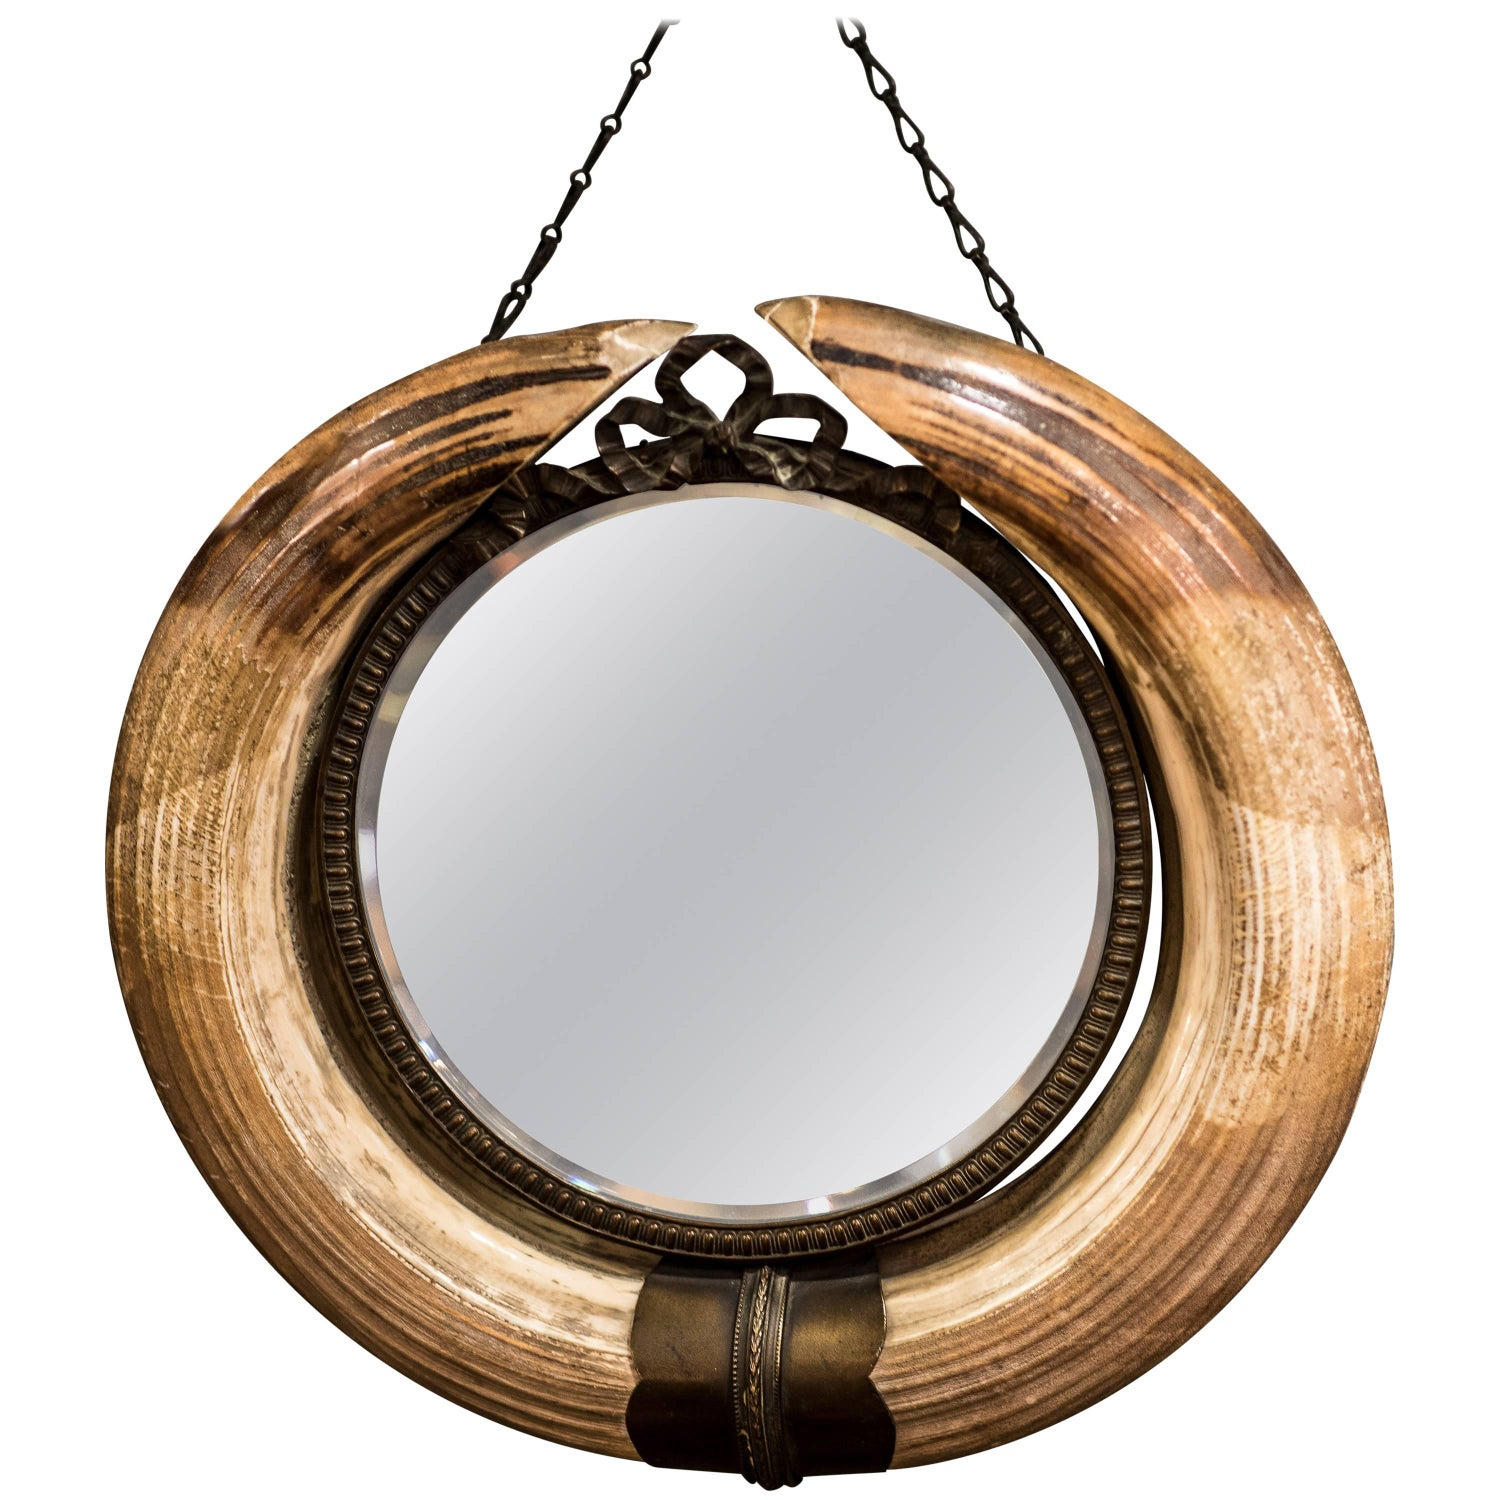 Early 1900s Mirrors - 159 For Sale at 1stdibs